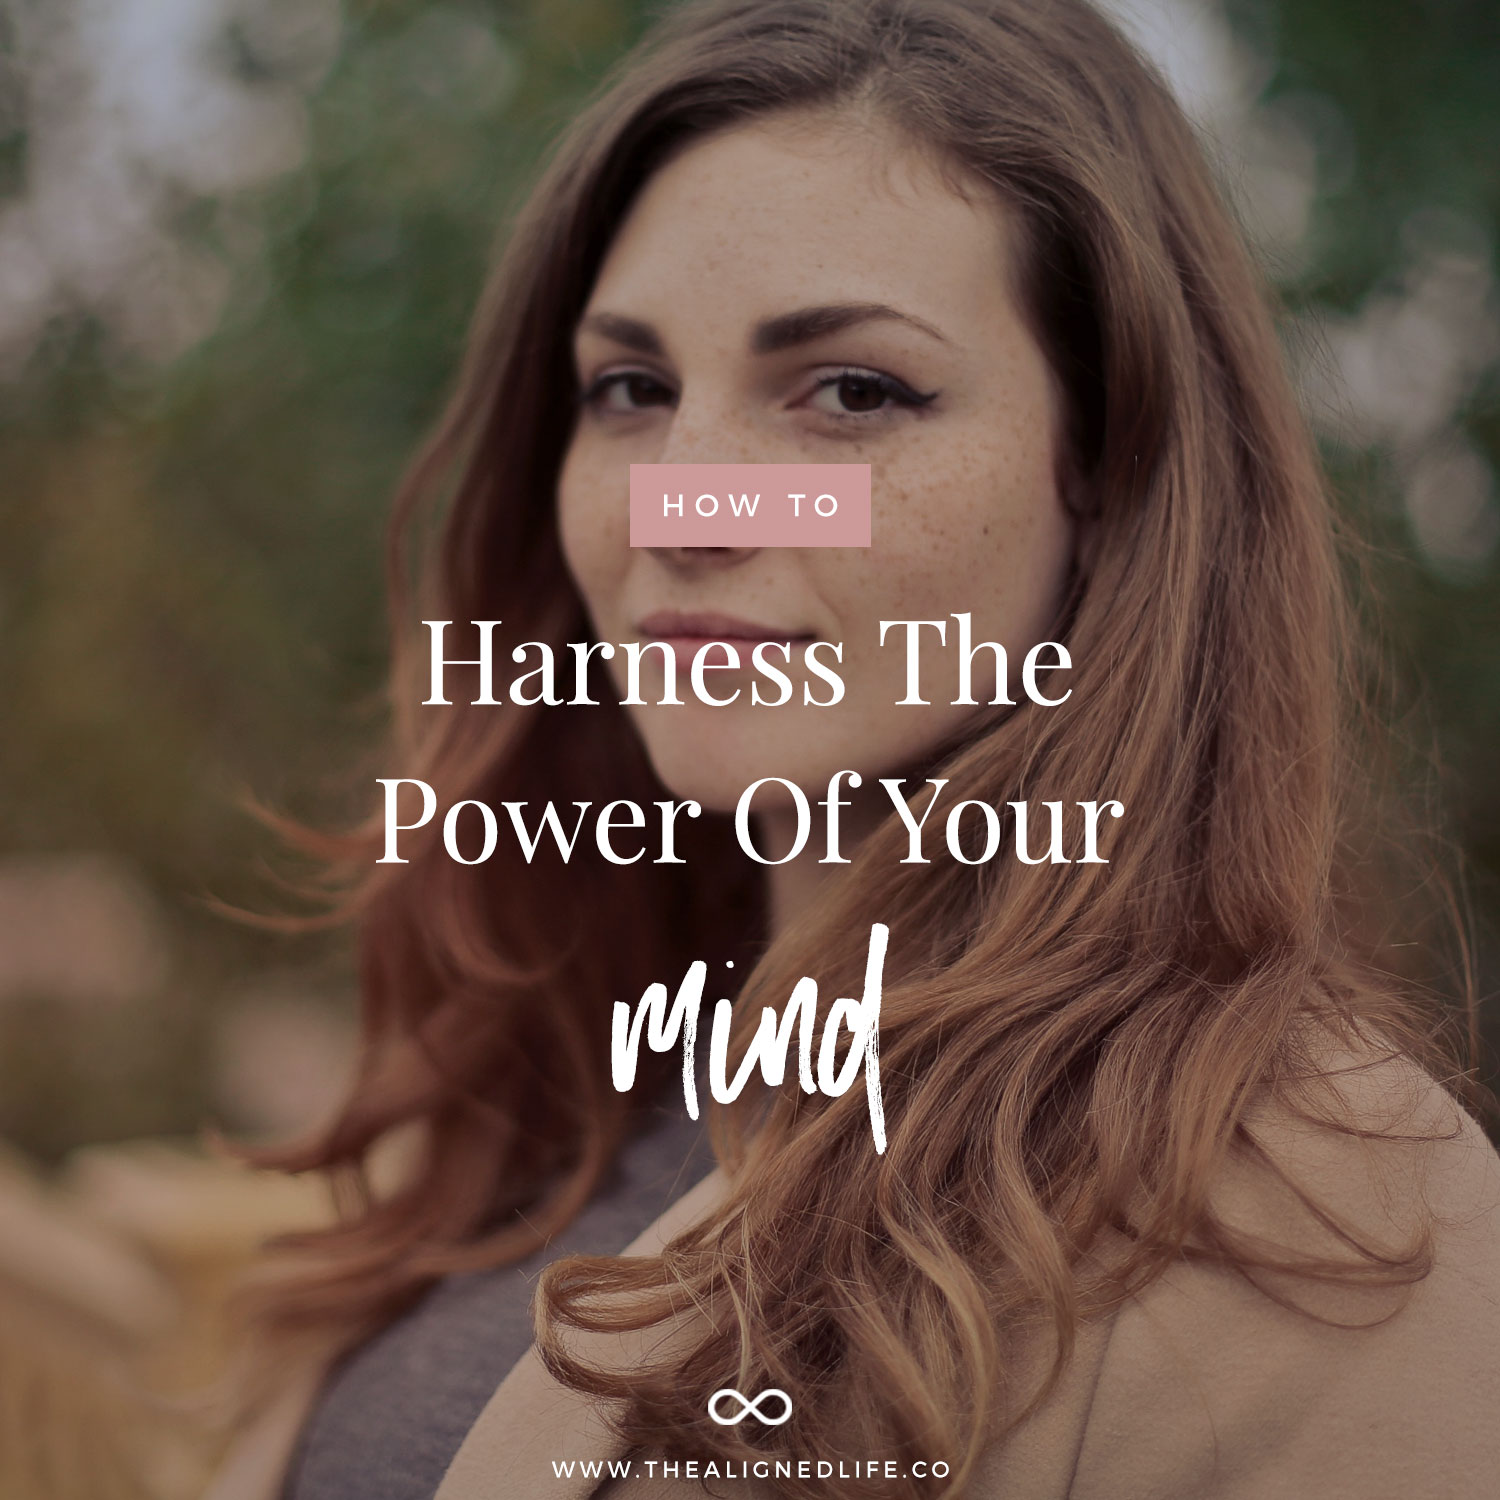 Harness The Power Of Your Mind For Good (& Not Evil!)